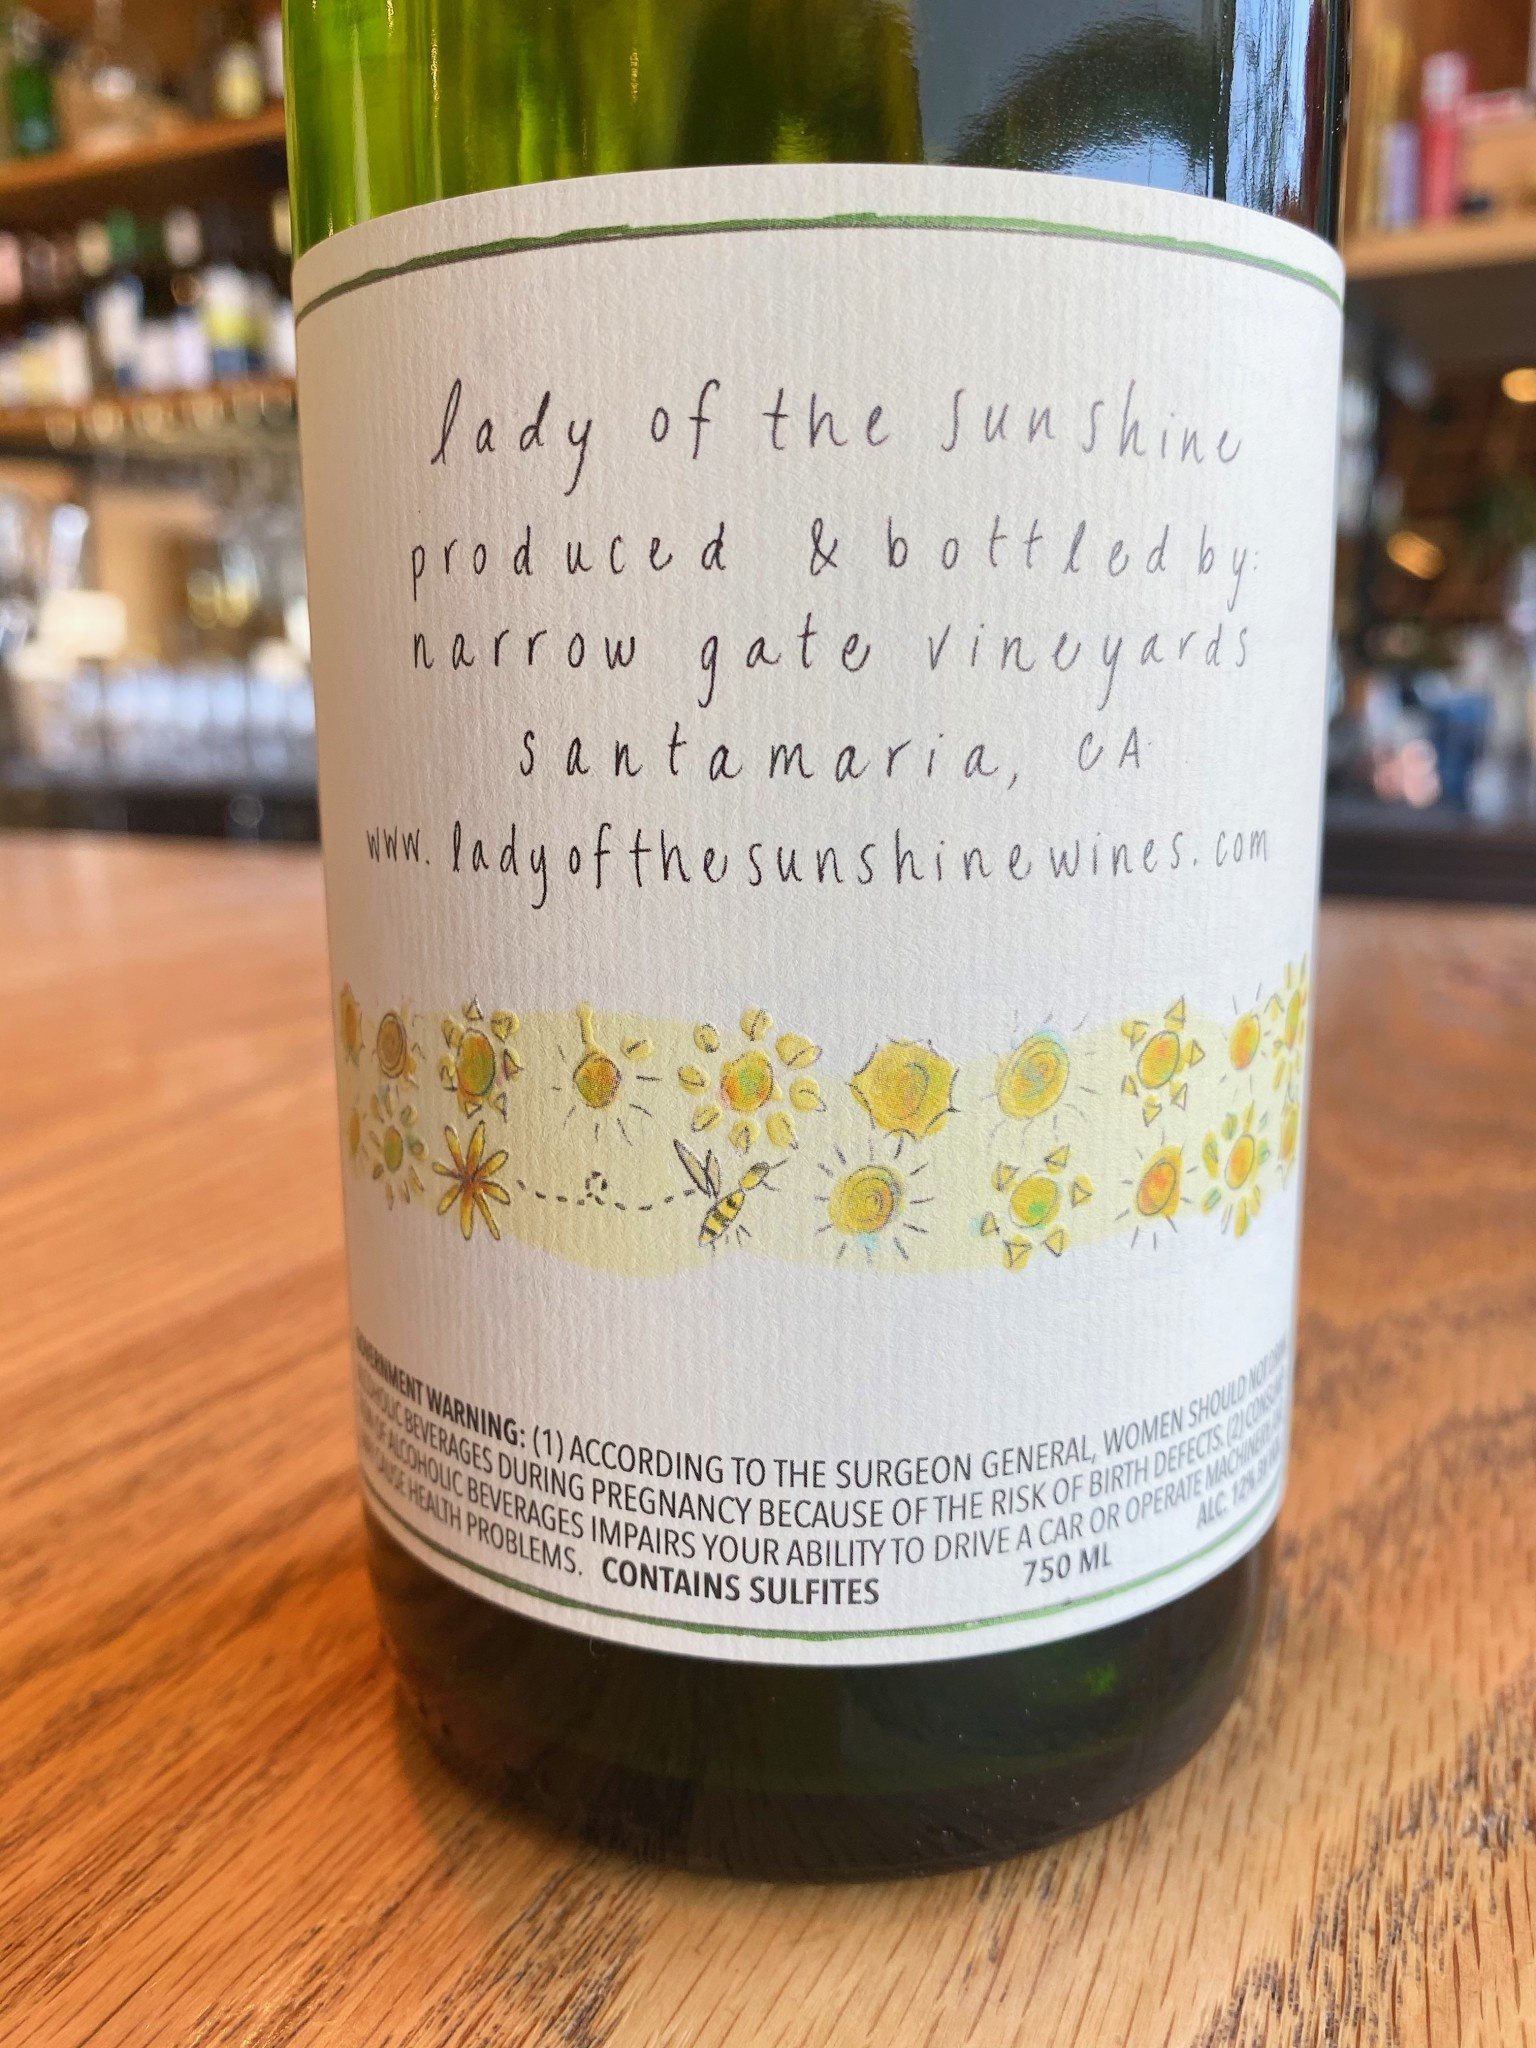 Lady of Sunshine 2018 Lady of Sunshine Coquelicot Vineyard Santa Ynez Valley 750ml